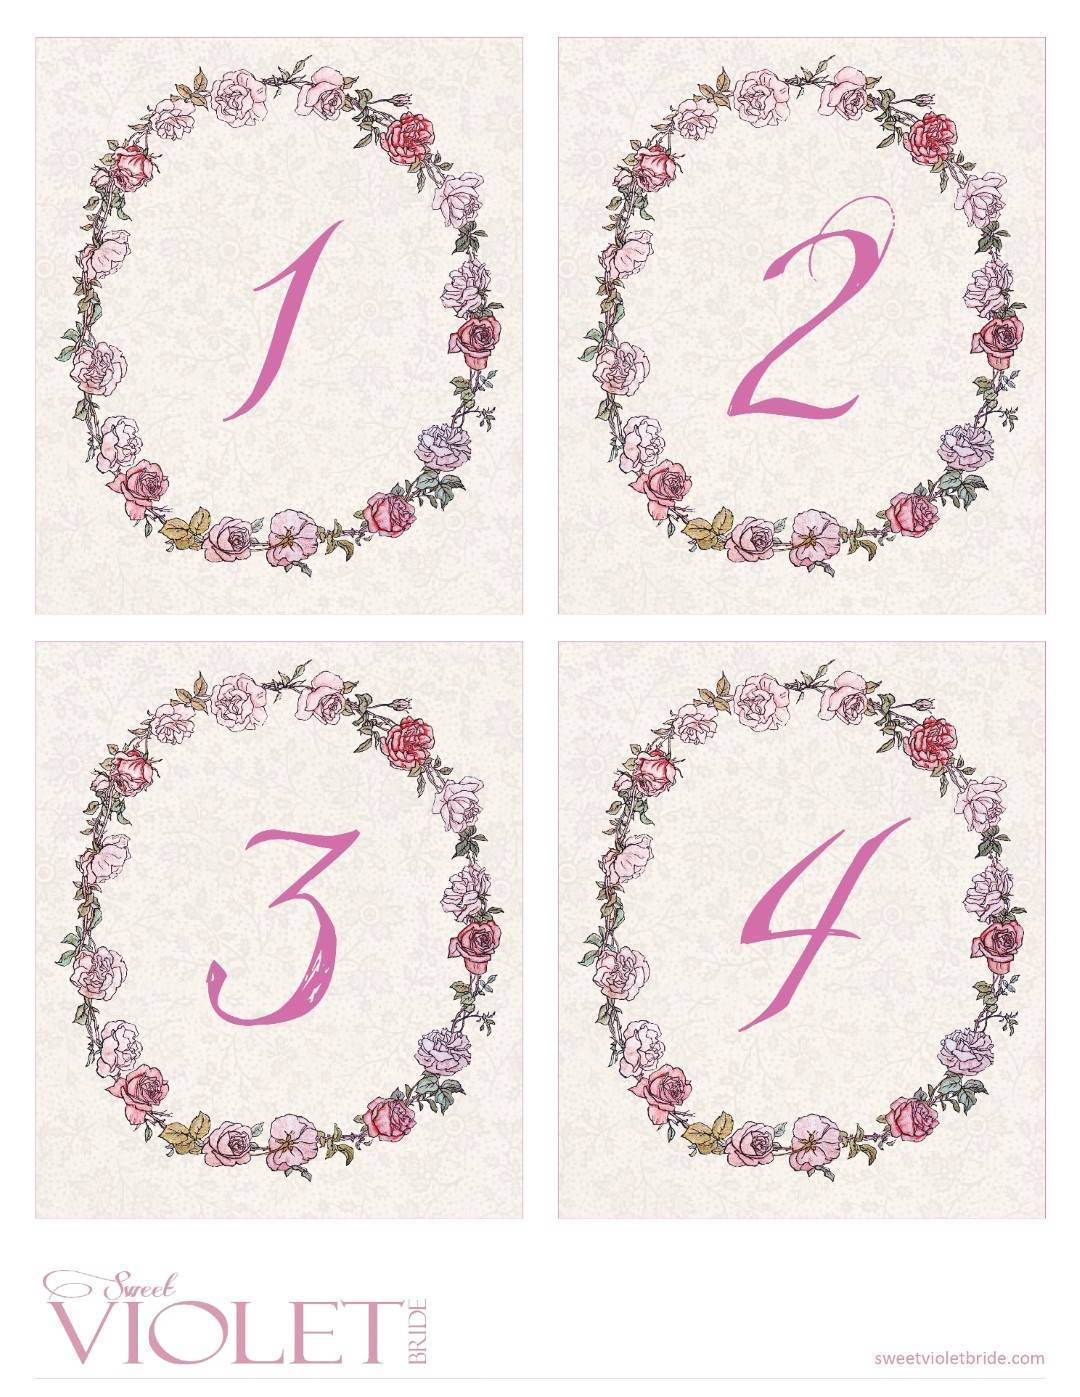 pink whimsical rose wreath + lace table numbers – free diy printable – 1-4